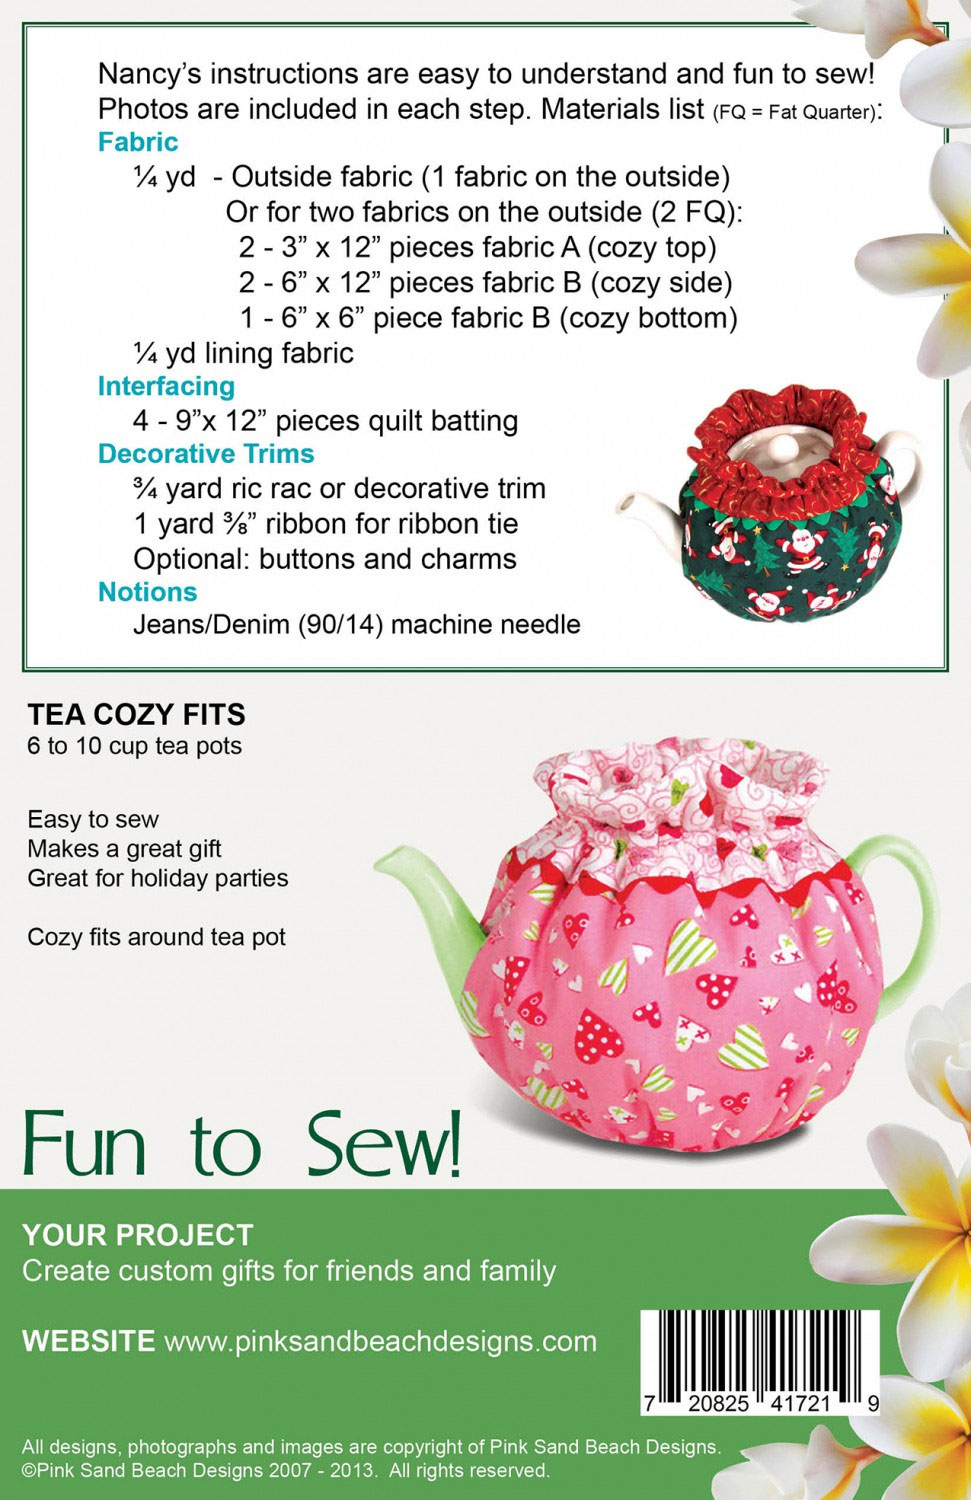 Afternoon-Tea-Party-sewing-pattern-Pink-Sand-Beach-Designs-back